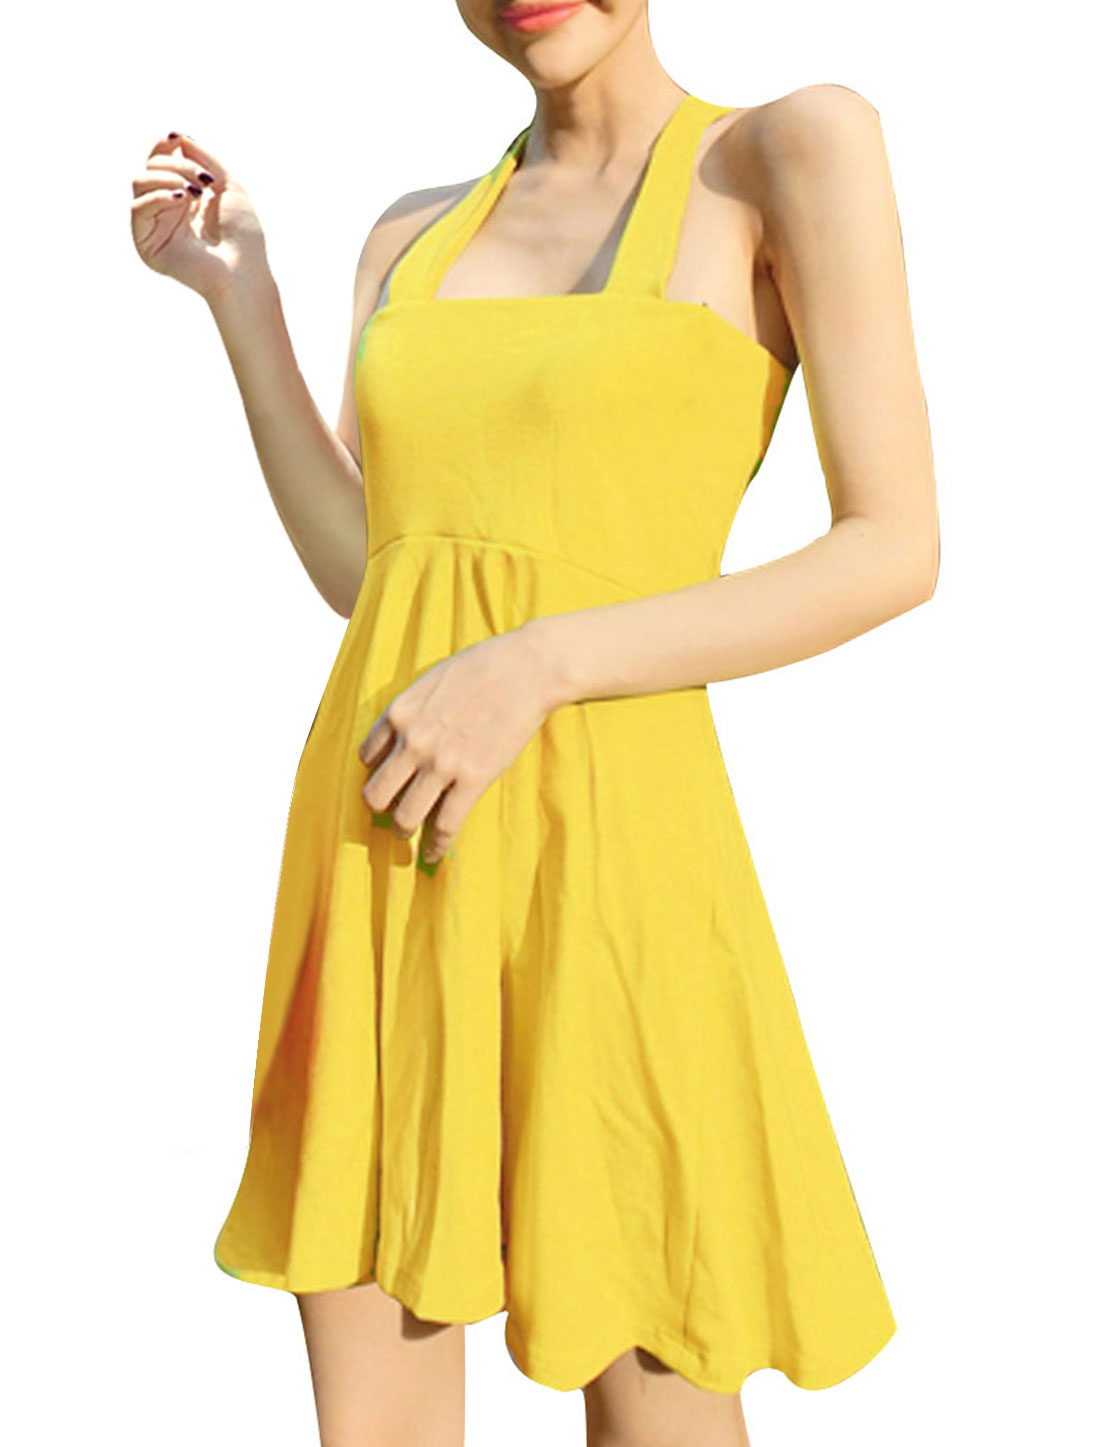 Ladies Shoulder Straps Design Cross Back Fit-and Flare Yellow Mini Dress XS